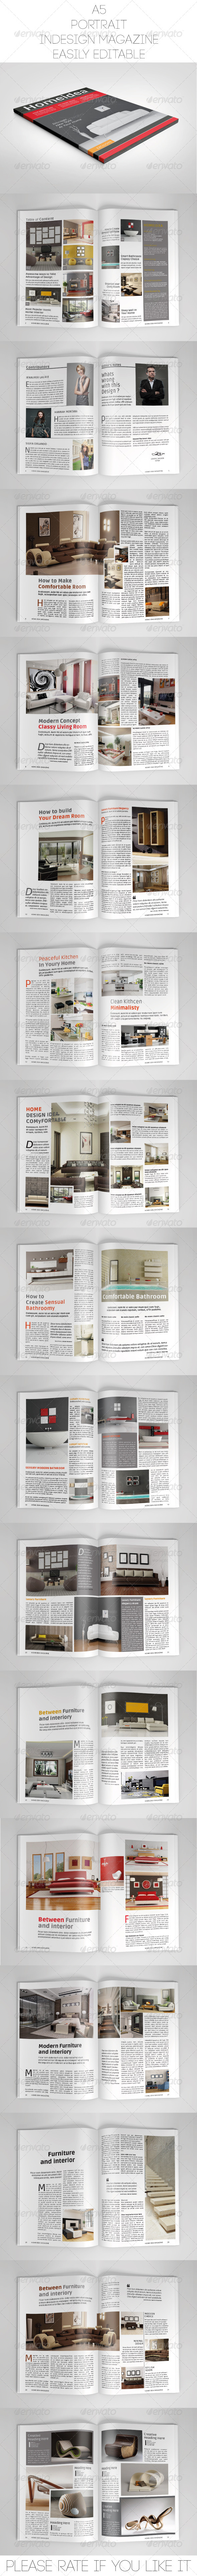 GraphicRiver A5 Portrait Indesign Magazine Template 7507145